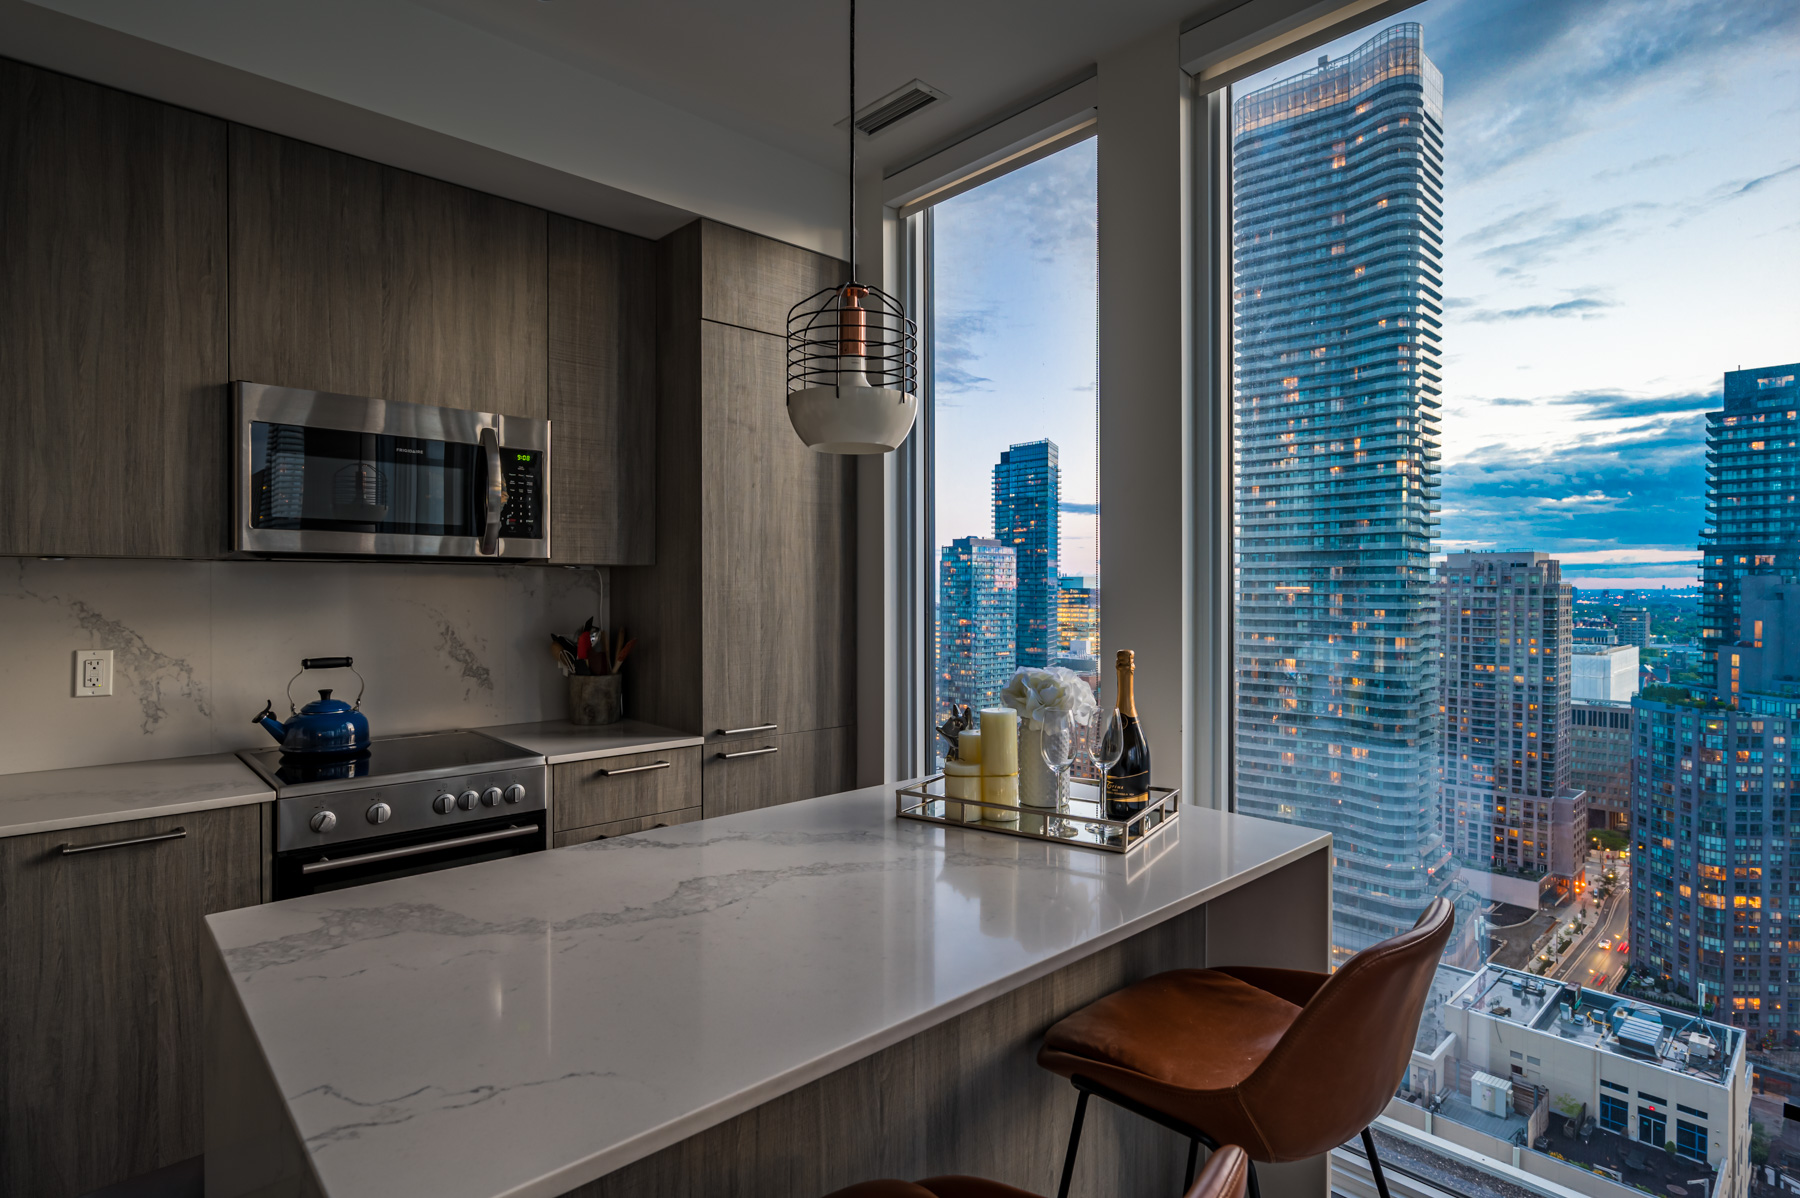 View of Toronto from 28 Wellesley St Unit 3009 kitchen island.